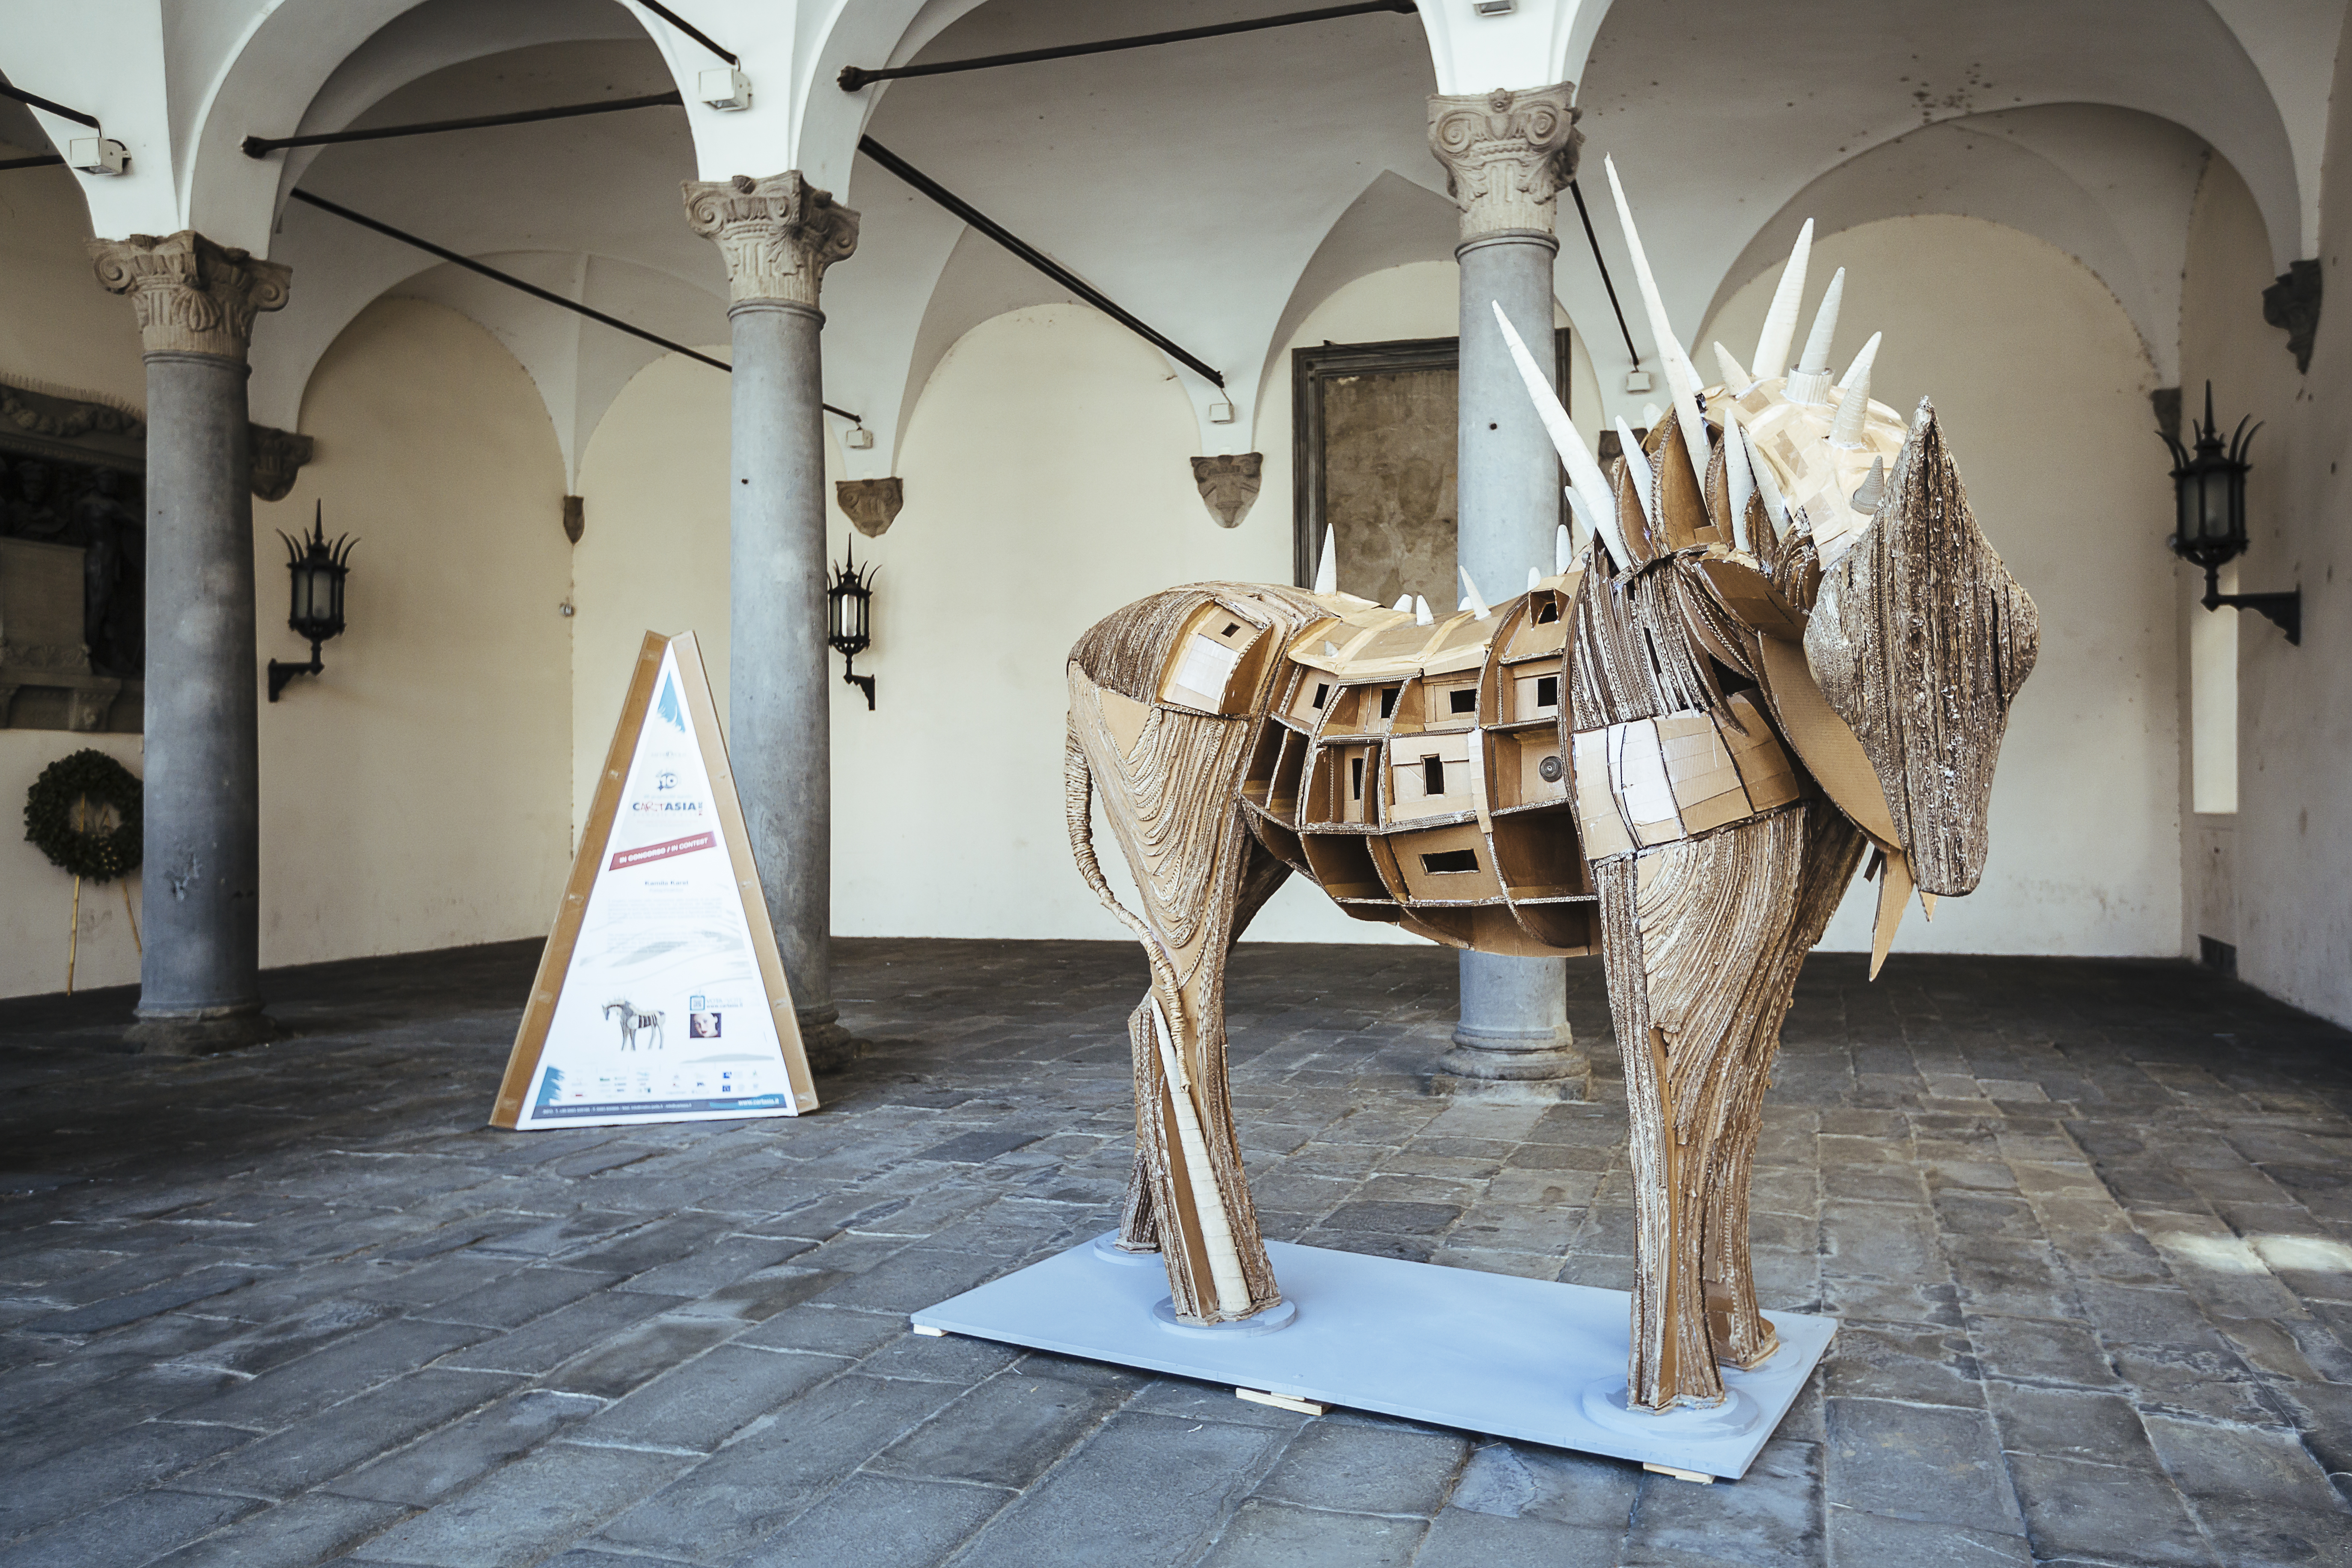 Kamila Karst, «Kataphraktos», in corrugated cardboard. The structure of the horse is inspired from two realities: the first is that of industrial architecture, the second is that of Hellenic narrative and figurative tradition. The properties of the material particularly determine the shape of the sculpture. Courtesy of Guido Mencari.